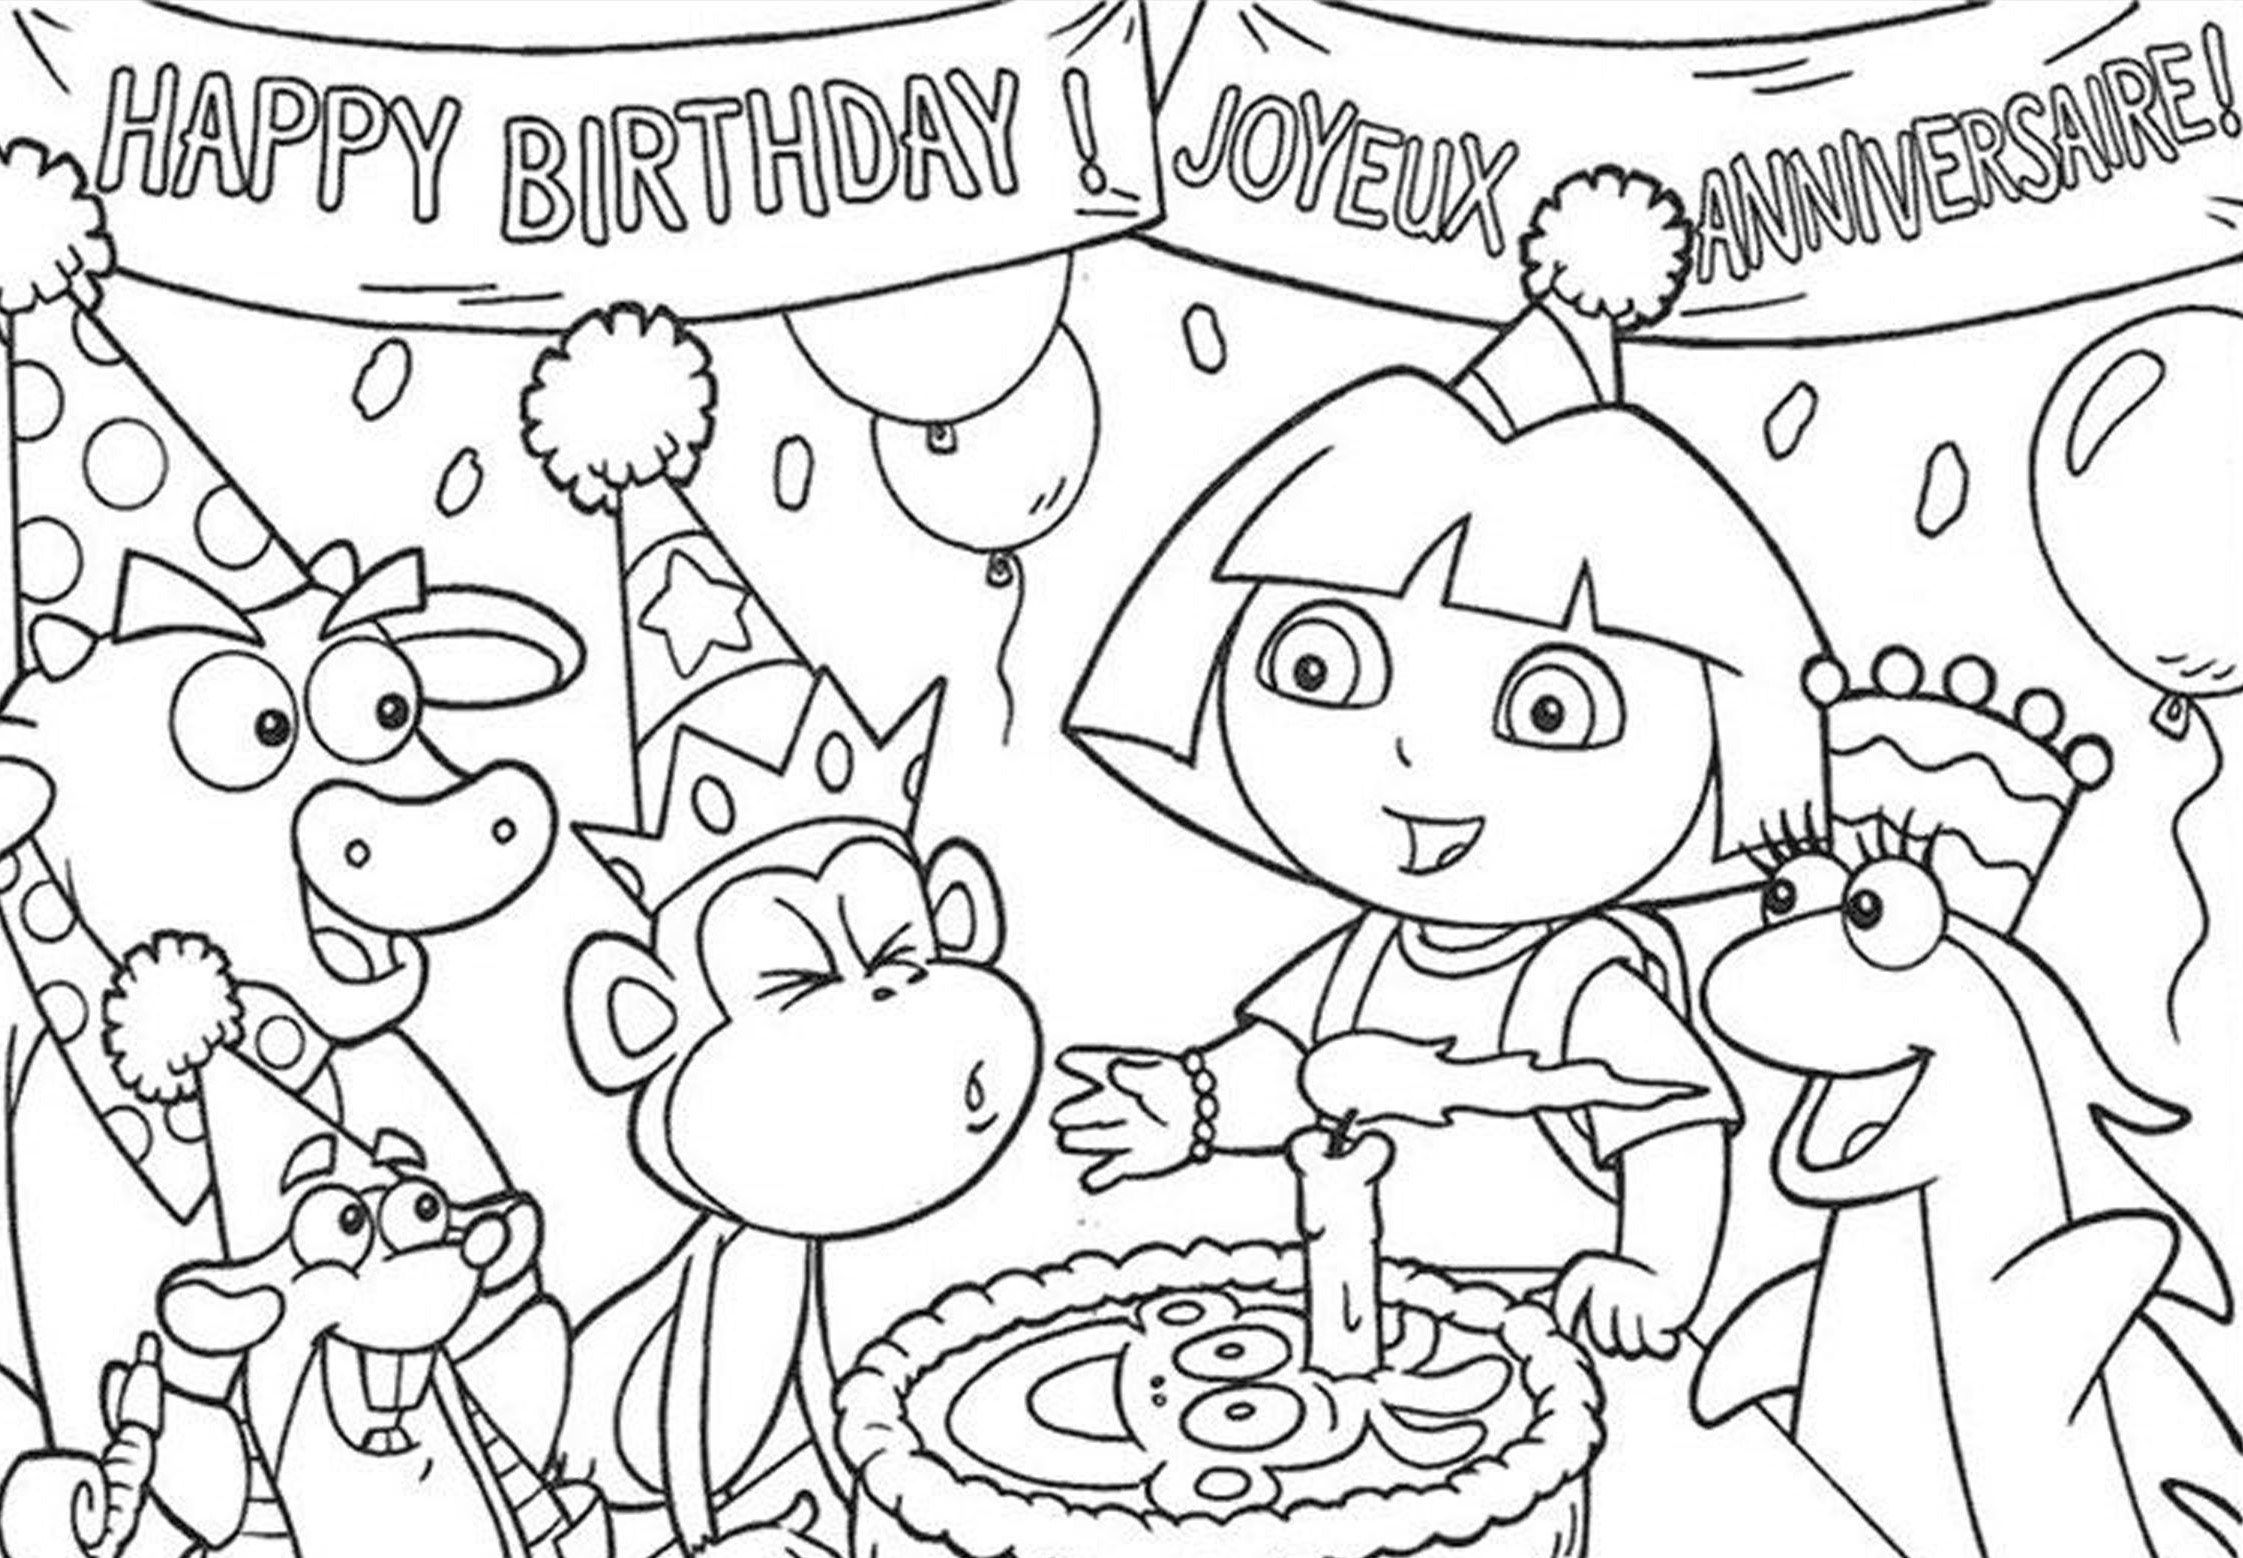 Coloring Book Dora Birthday Coloring Pages Dora Coloring Love Coloring Pages